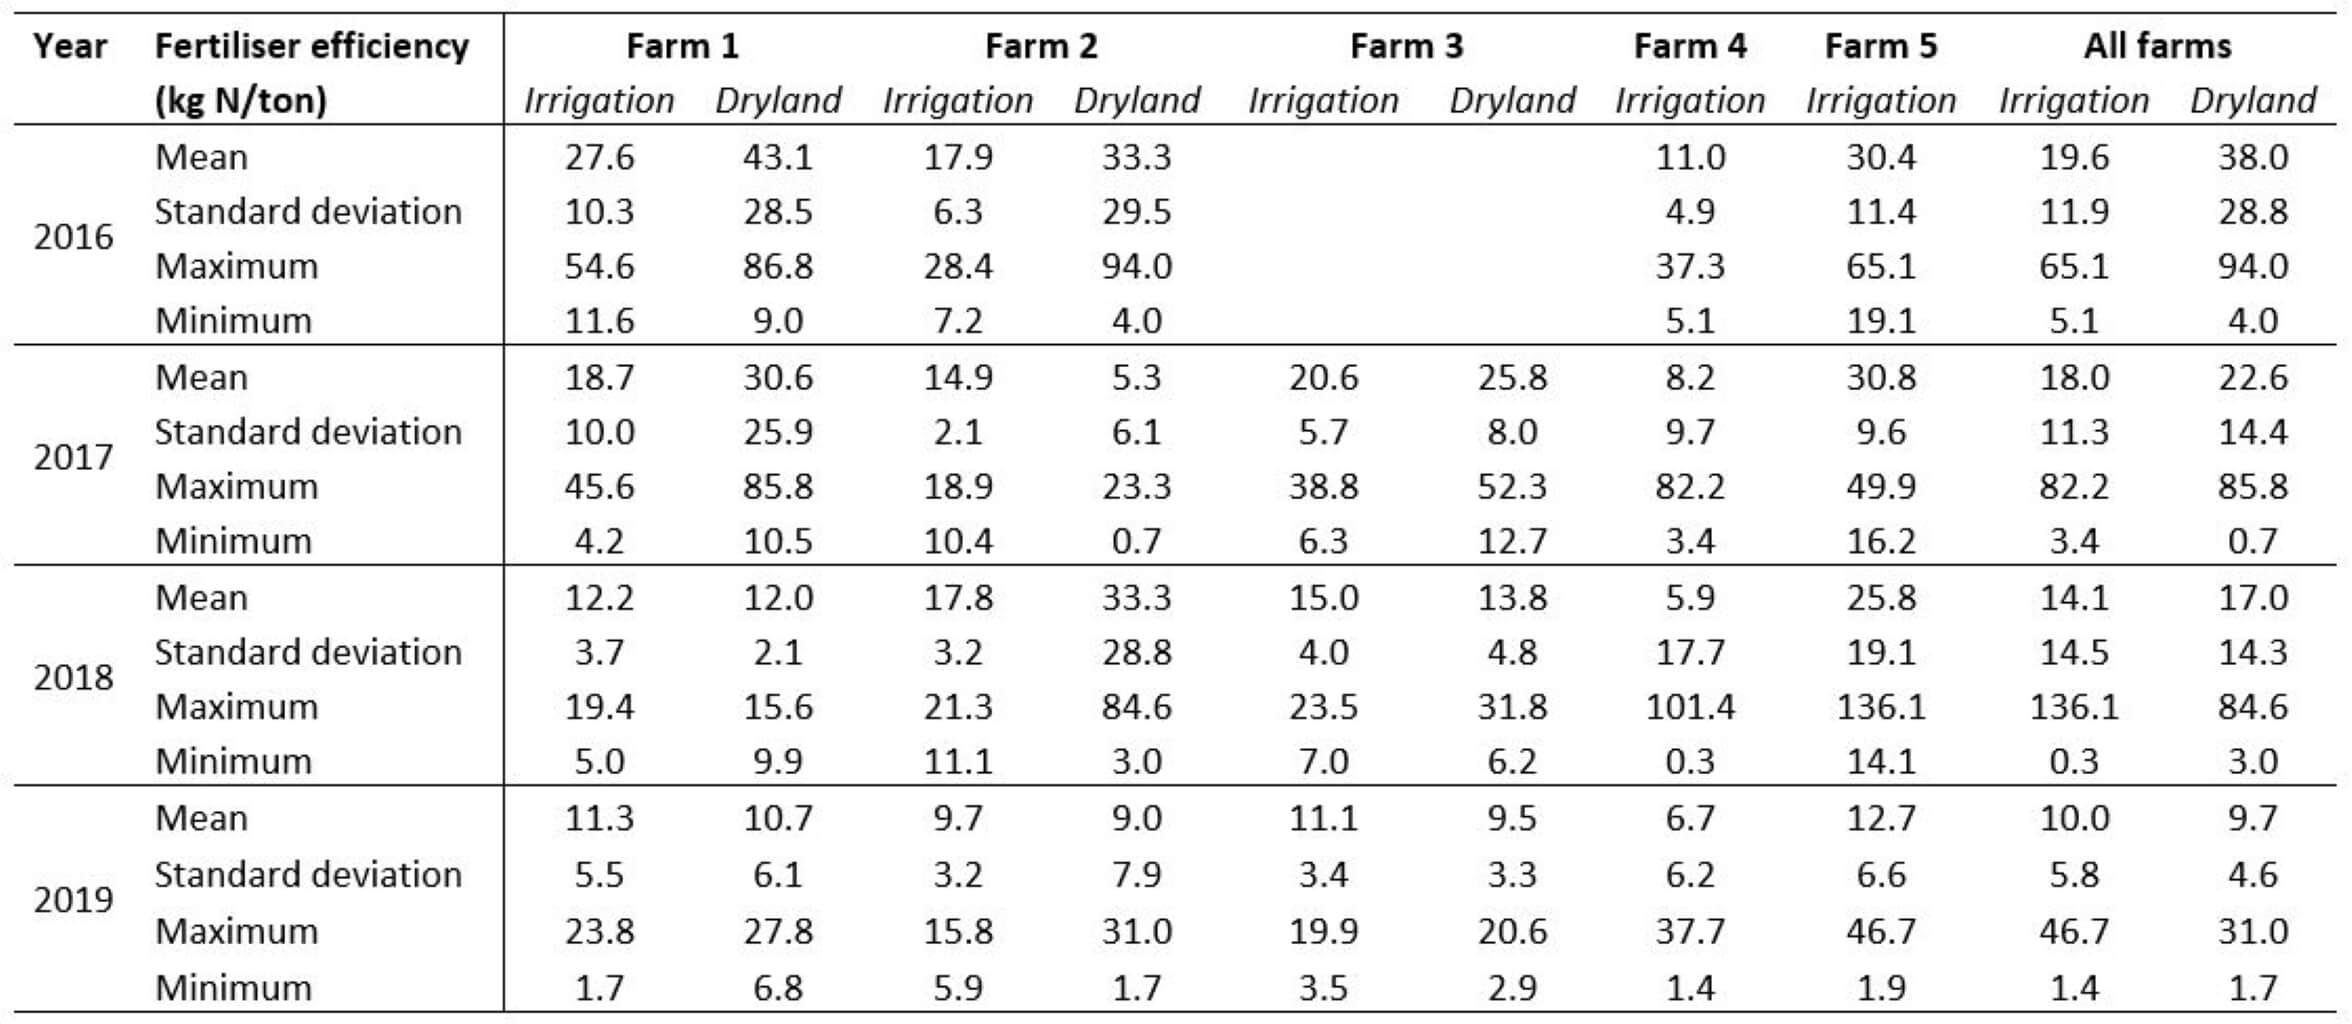 Table 2 - N fertiliser efficiency case study